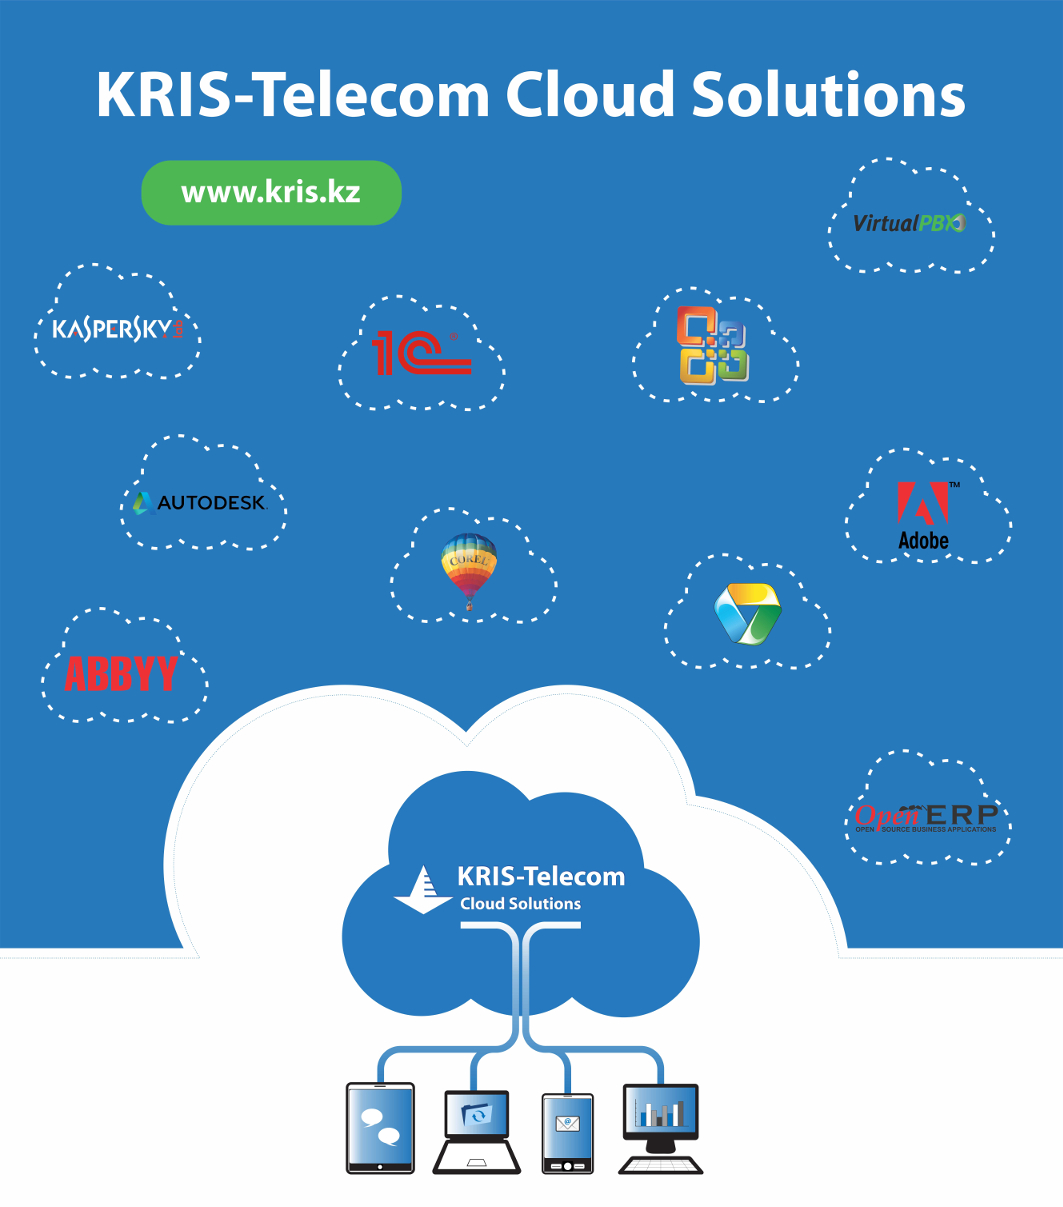 KRIS-Telecom Cloud Solutions